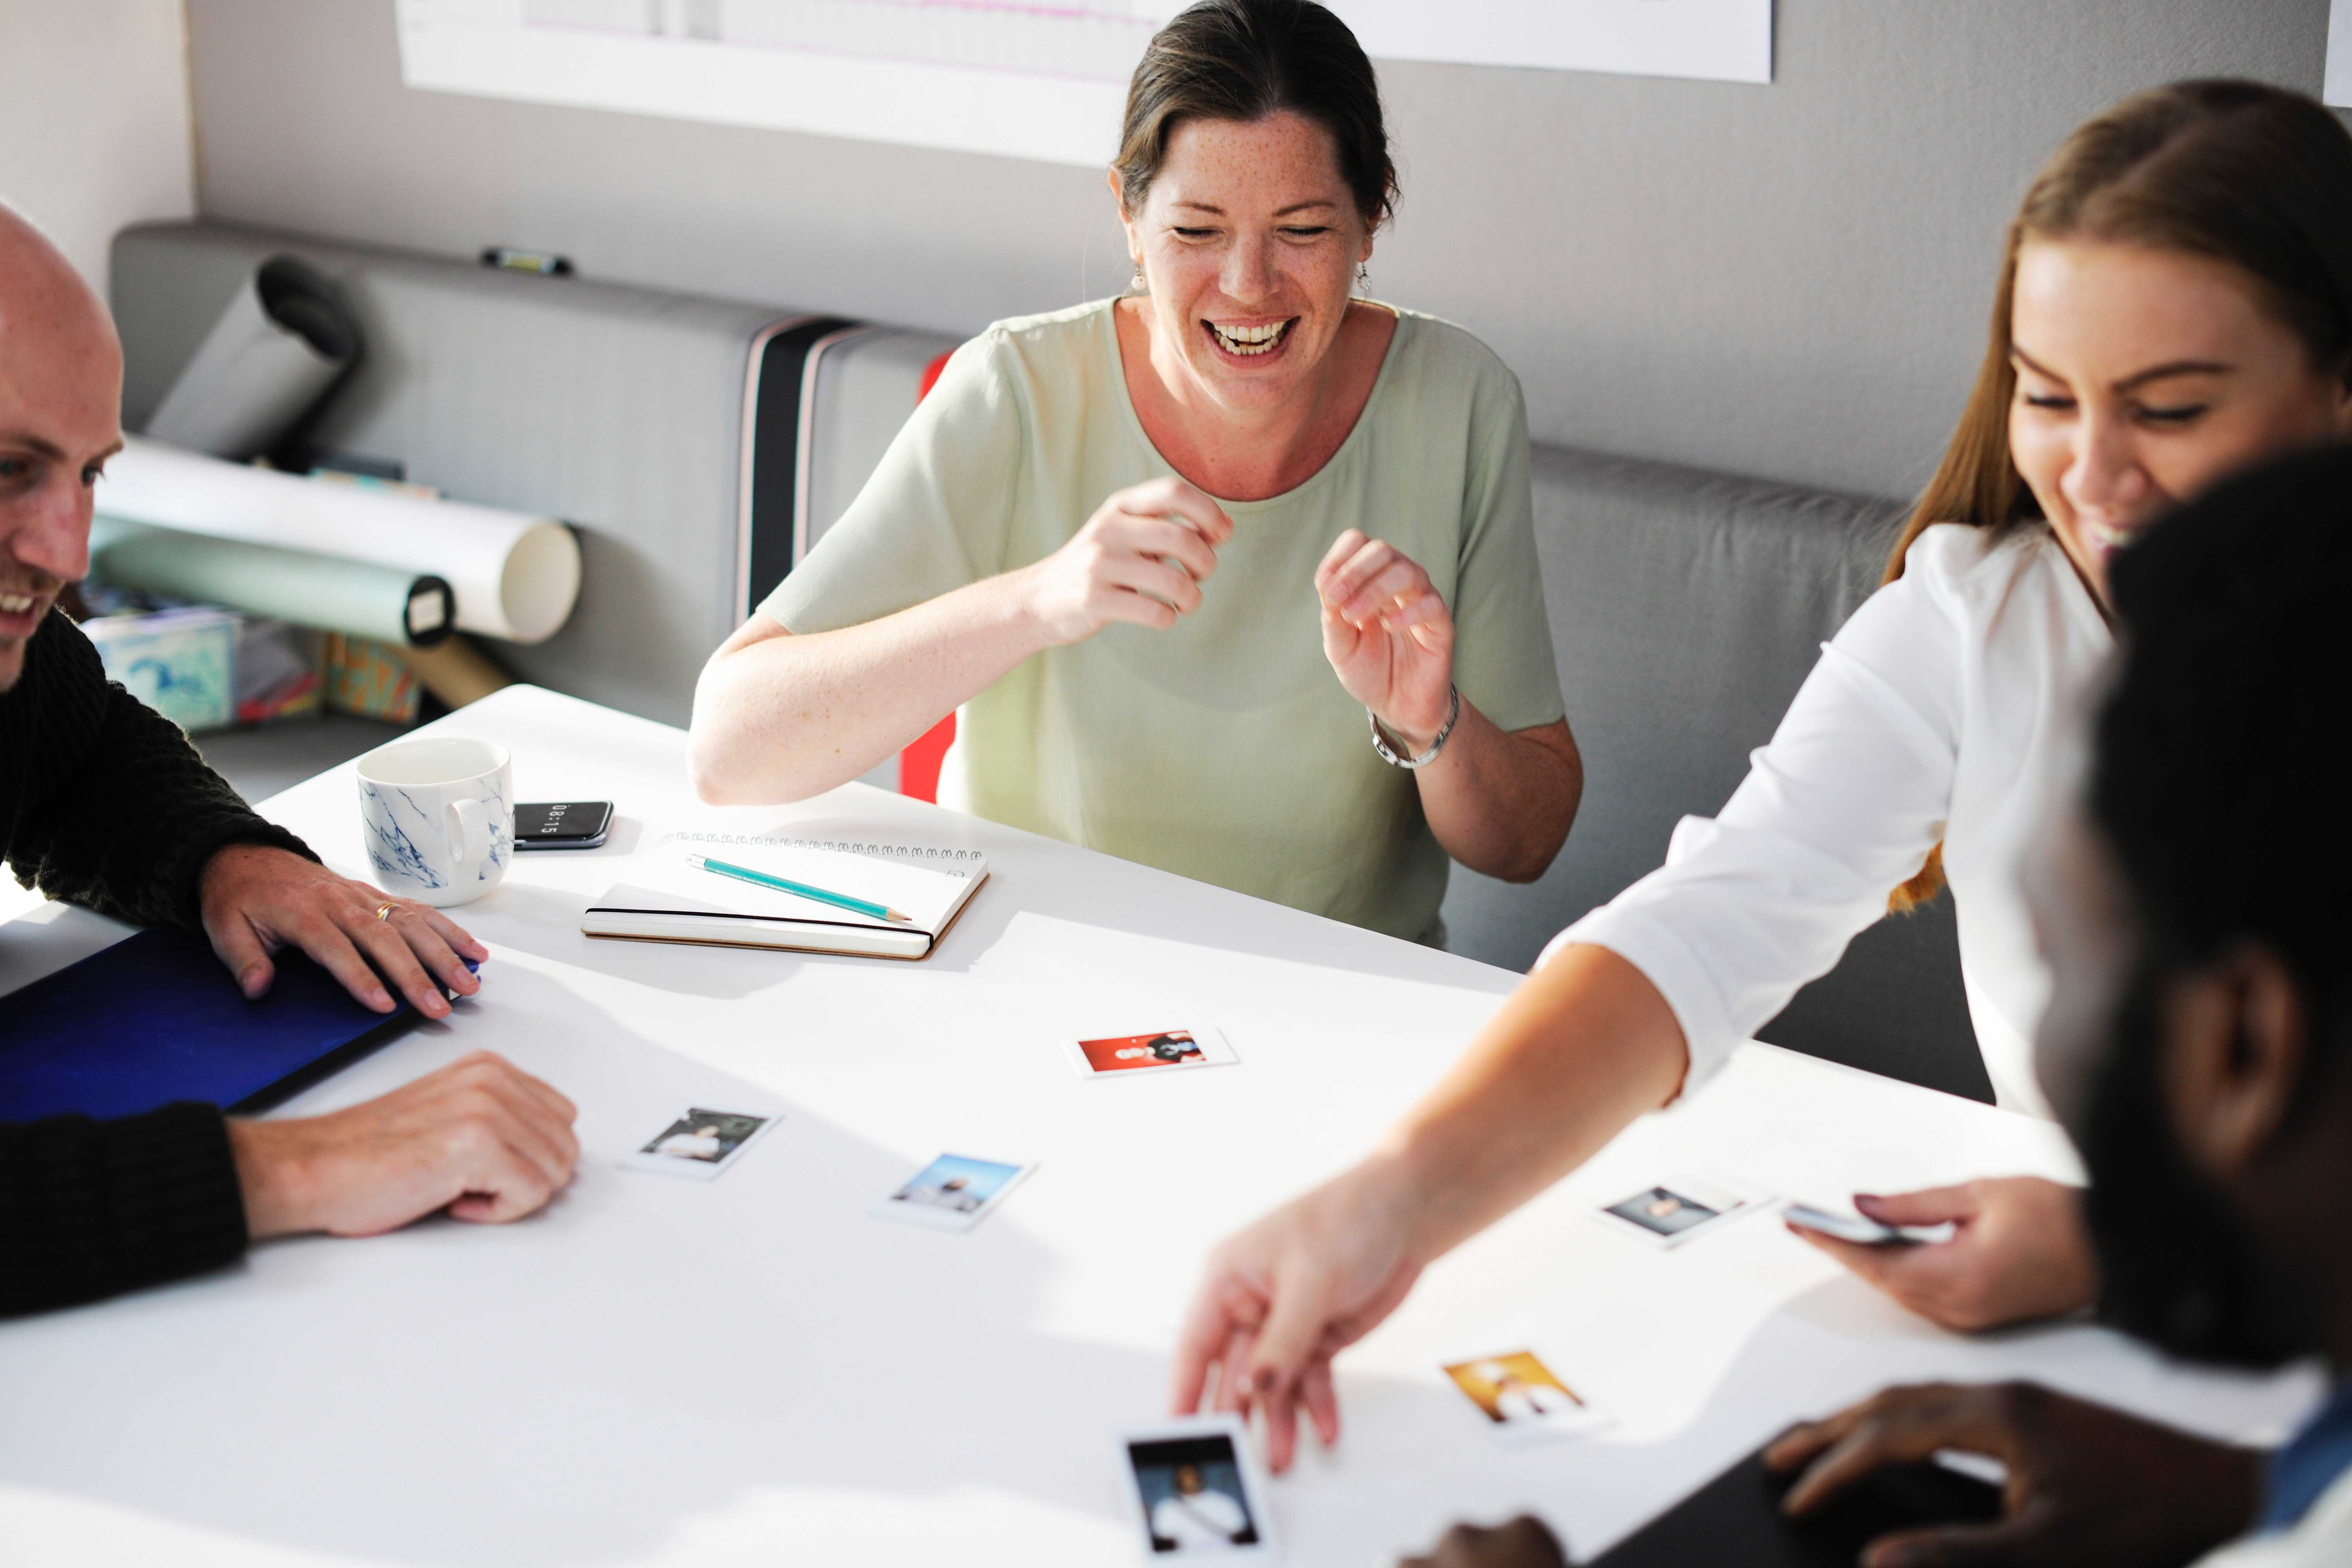 Meetings allow non-verbal language A lot of our communication is non-verbal. In asynchronous communication (e-mail, IM, etc), you miss out on important social cues like body language. Also, following a disconnected trail of emails and messages can get overwhelming. This type of communication can be misinterpreted - especially with nobody there to clarify.